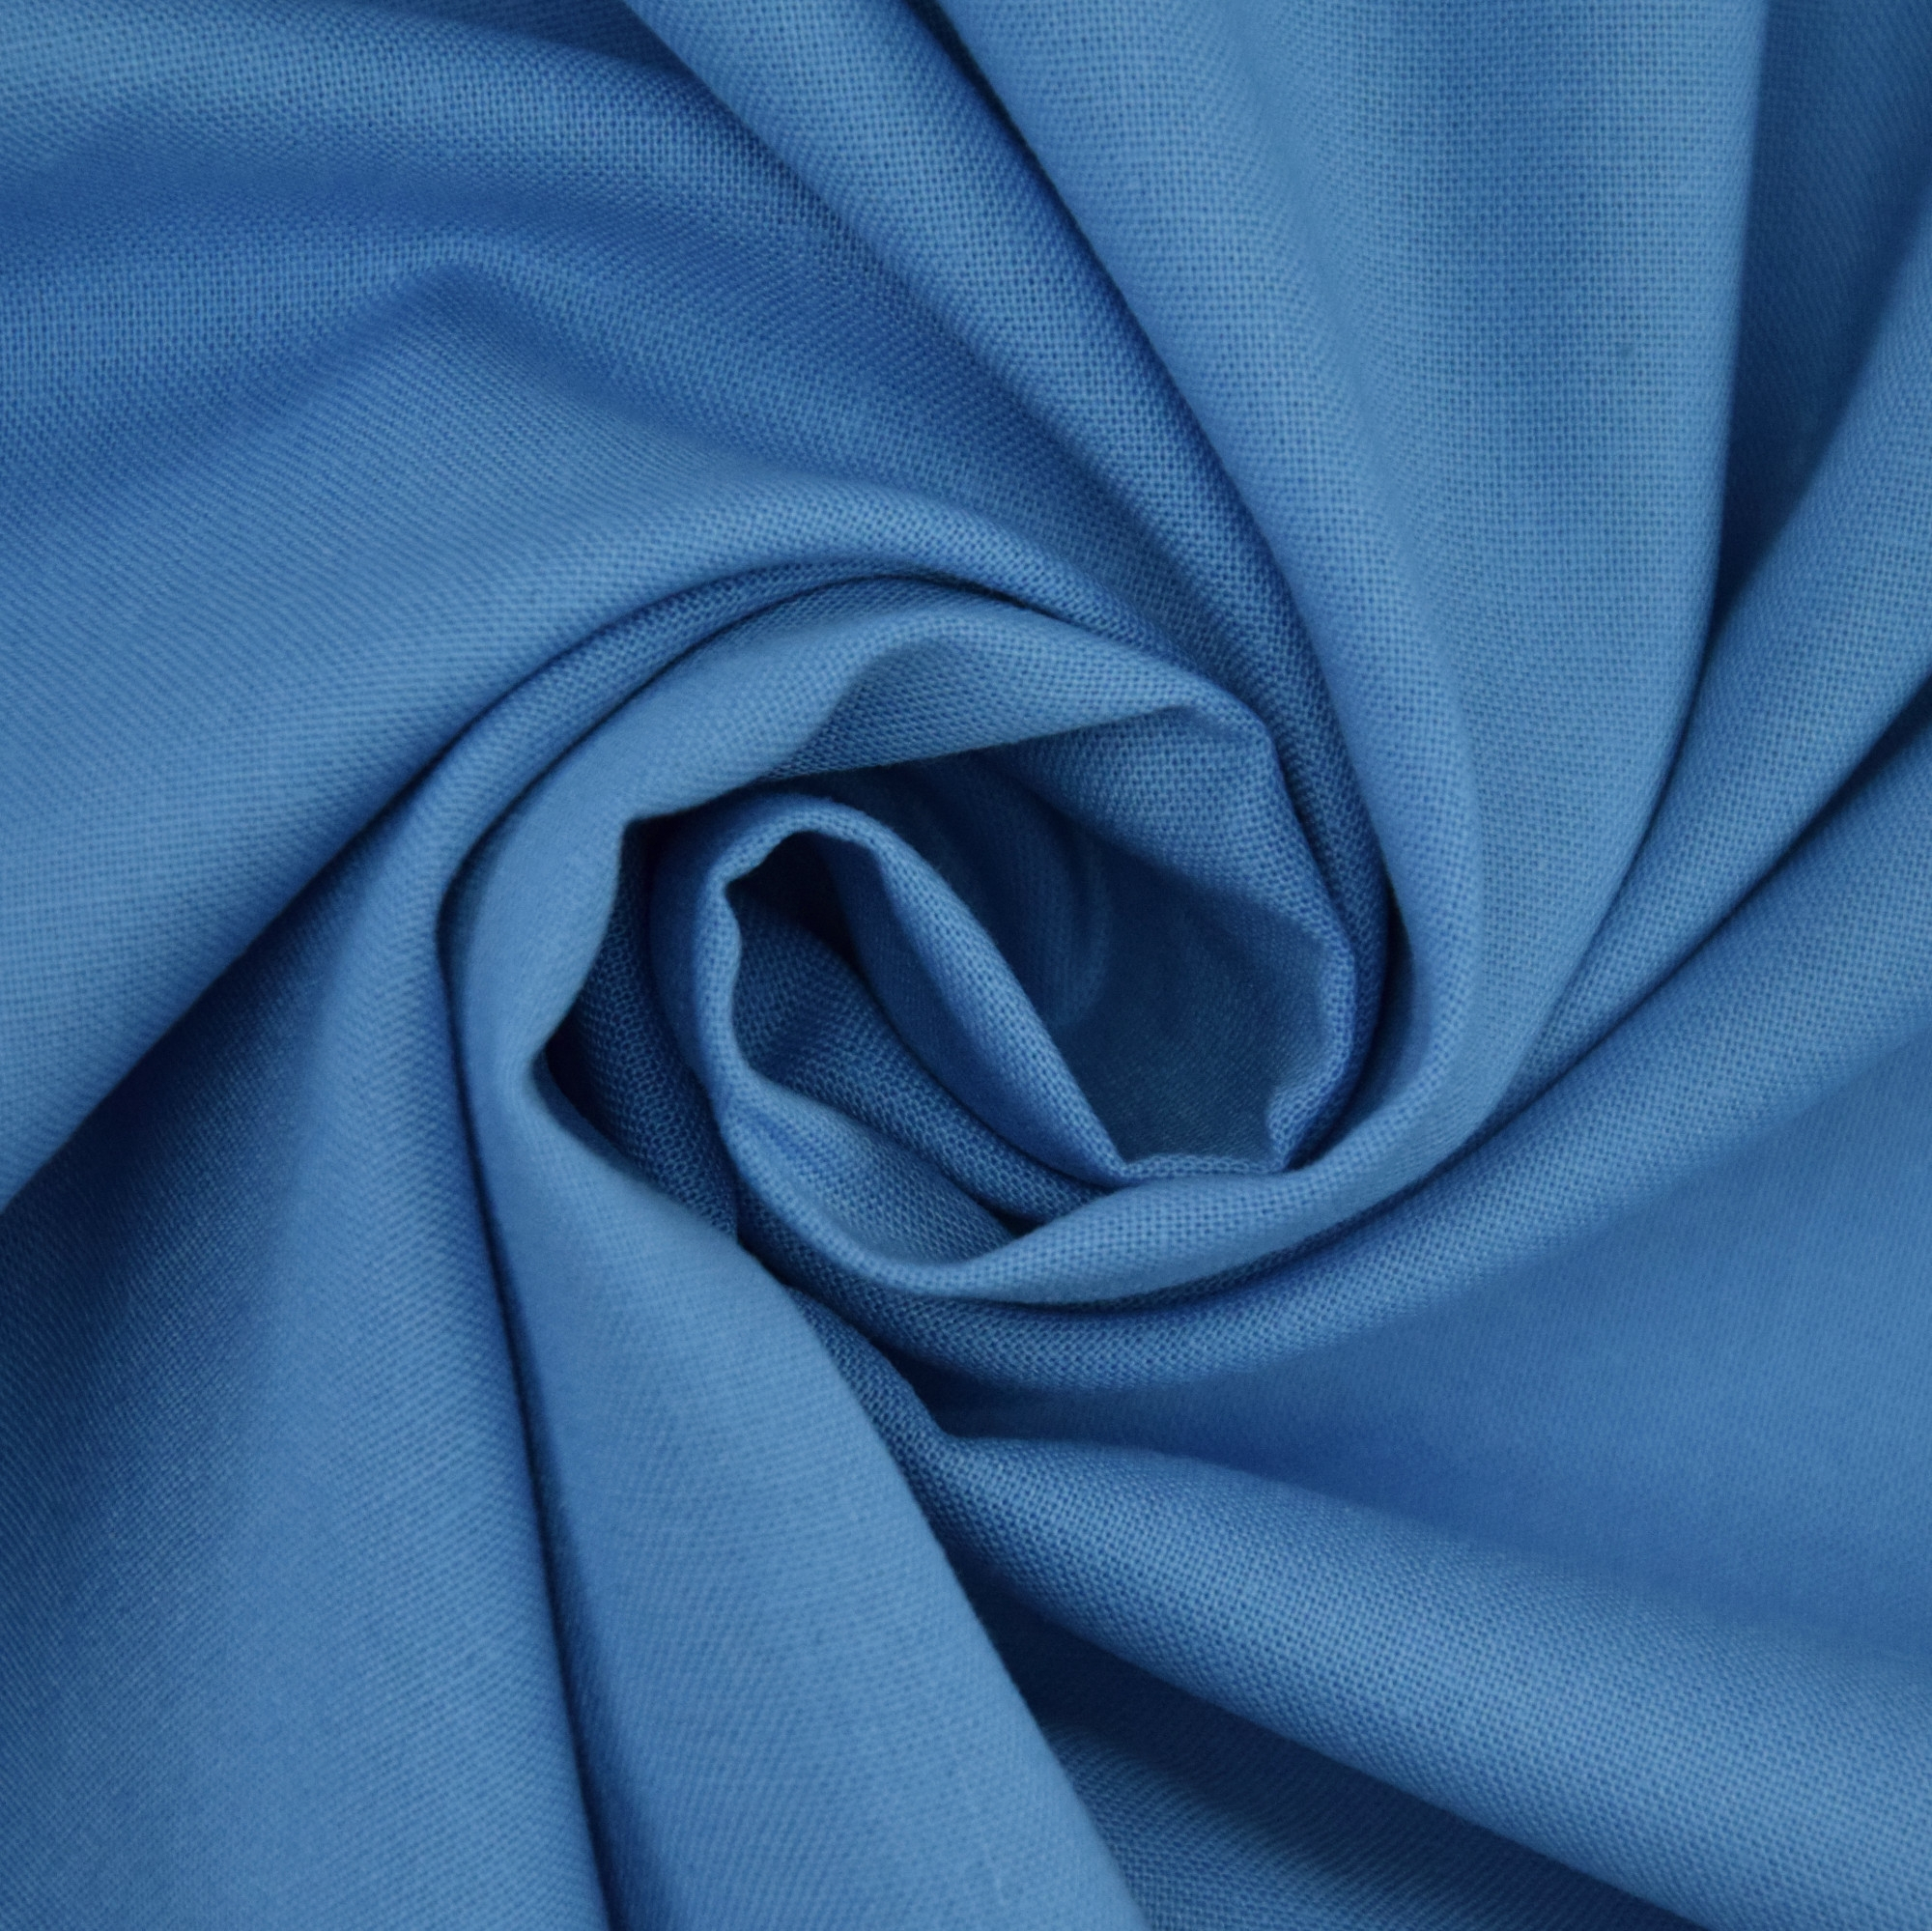 Cotton Cretonne skyblue | 100.018-7029 | blau